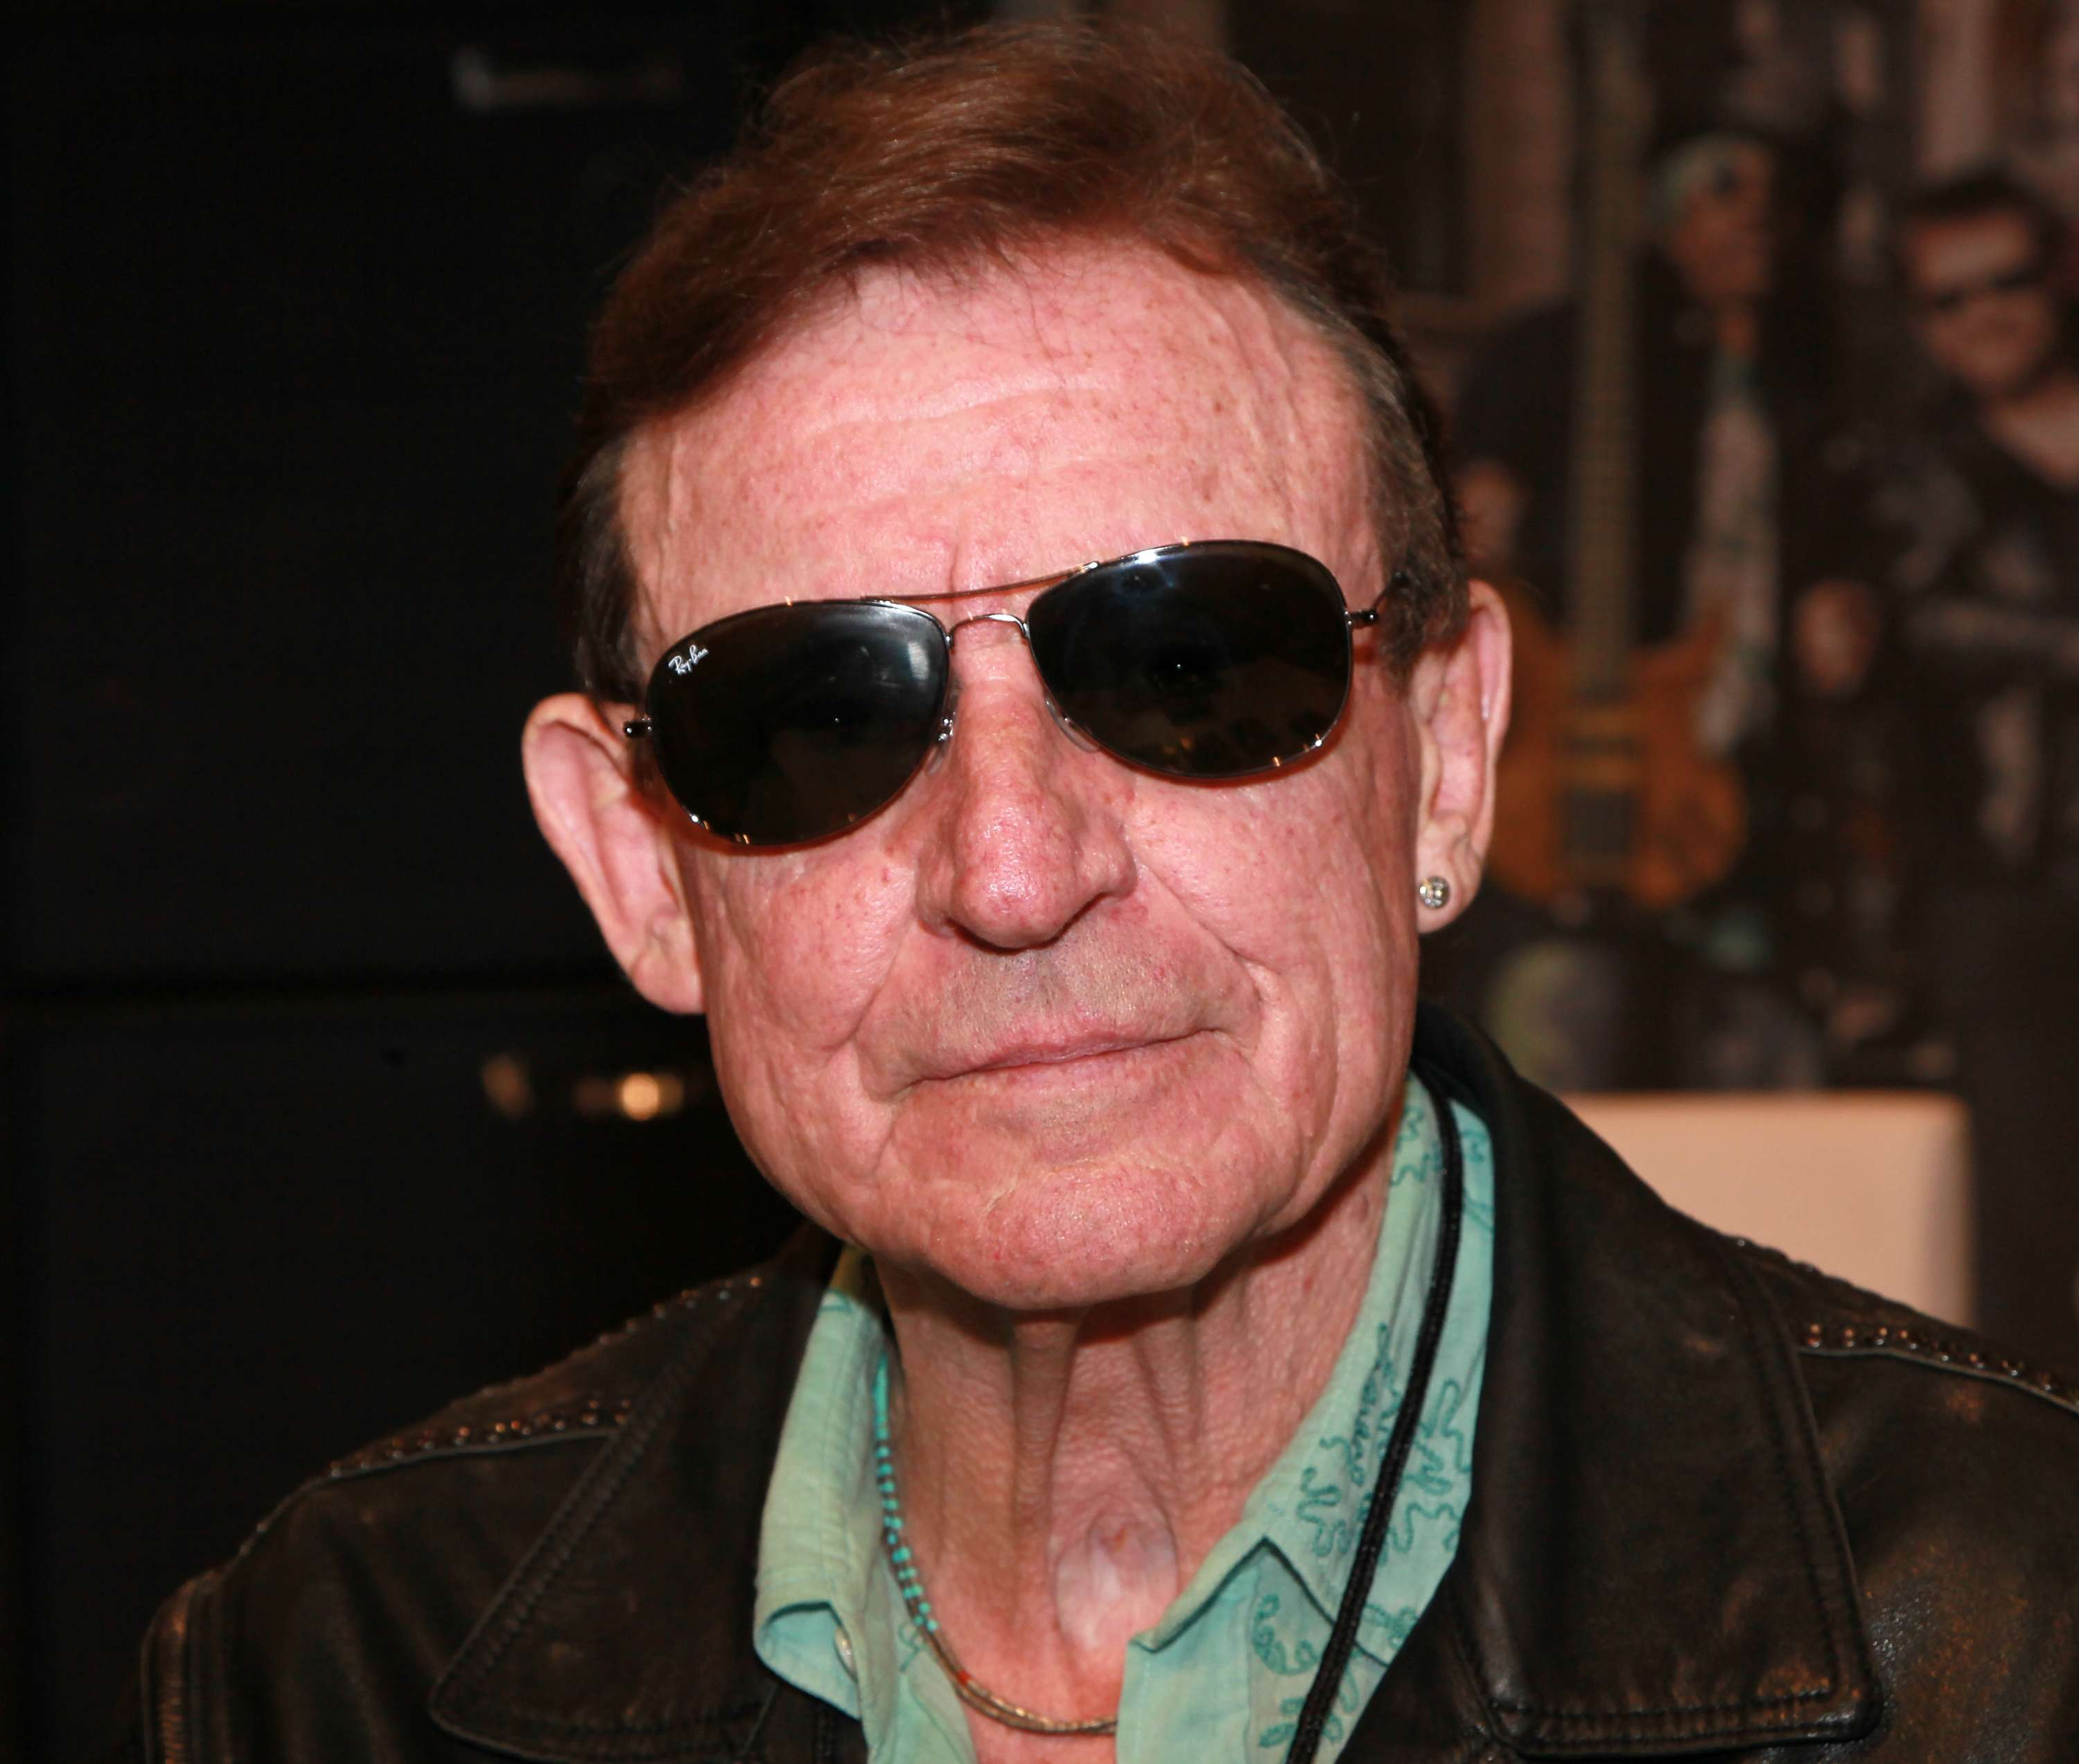 El bajista y cantante de Cream, Jack Bruce. (13/1/2011) Foto: Getty Images